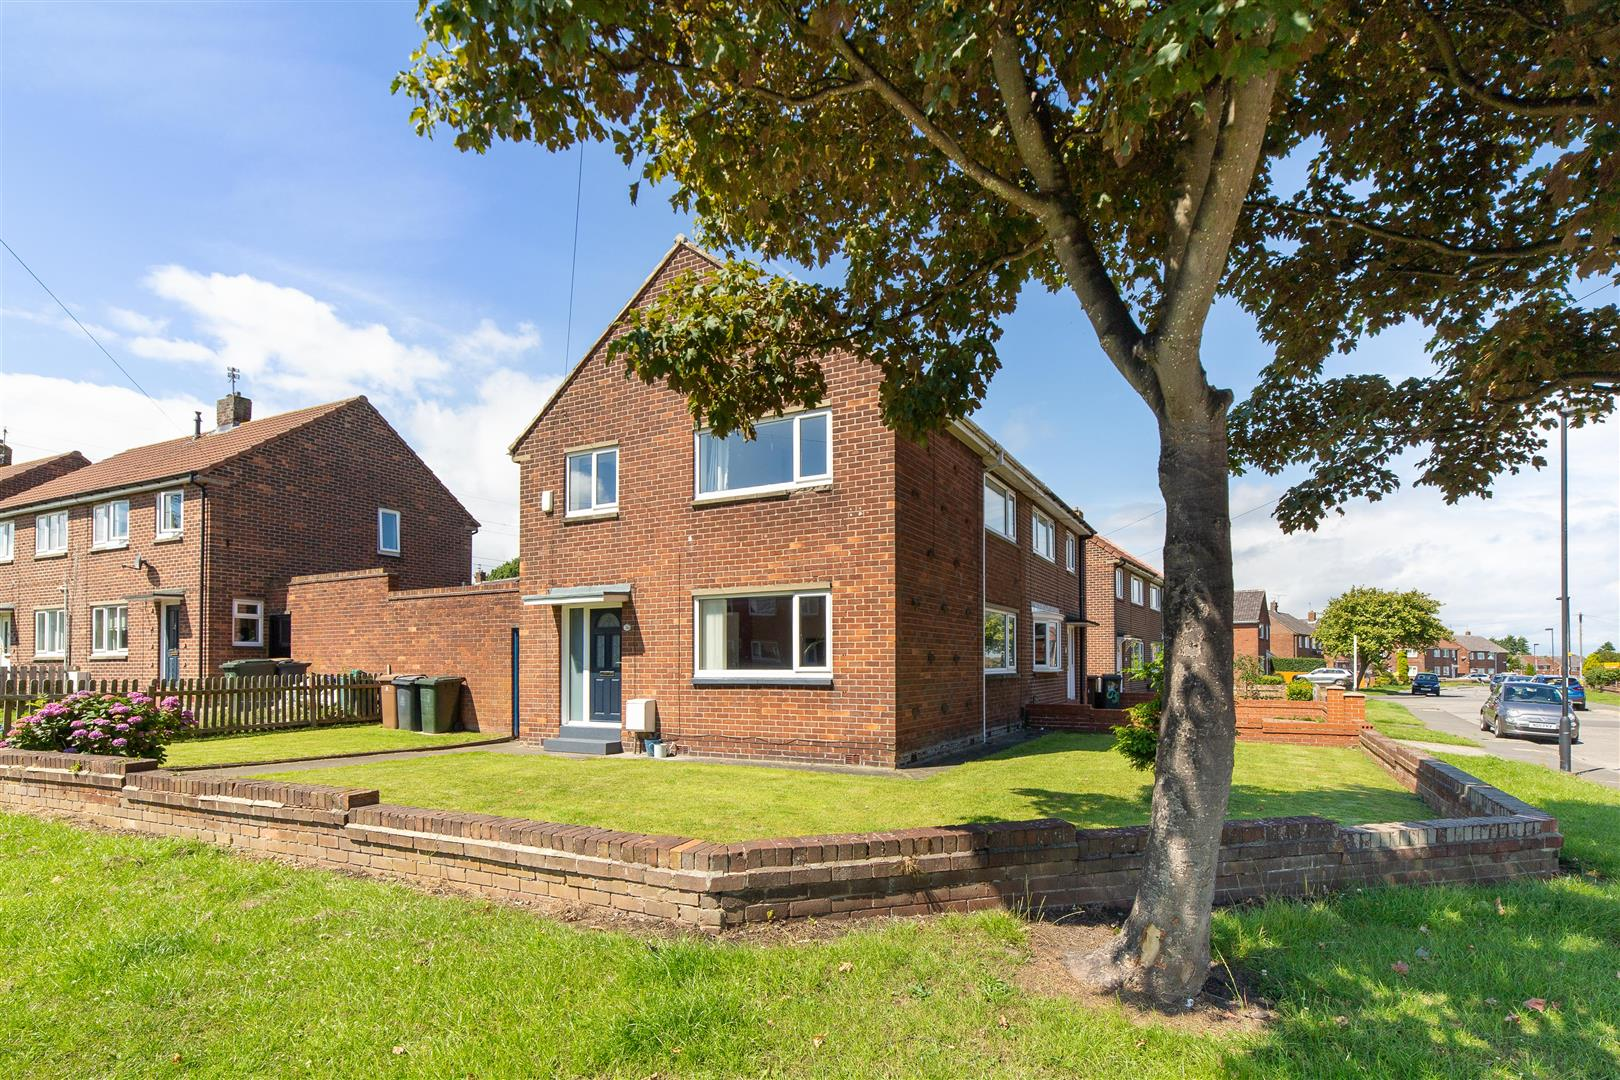 3 bed semi-detached house for sale in Newcastle Upon Tyne, NE27 0QA 0